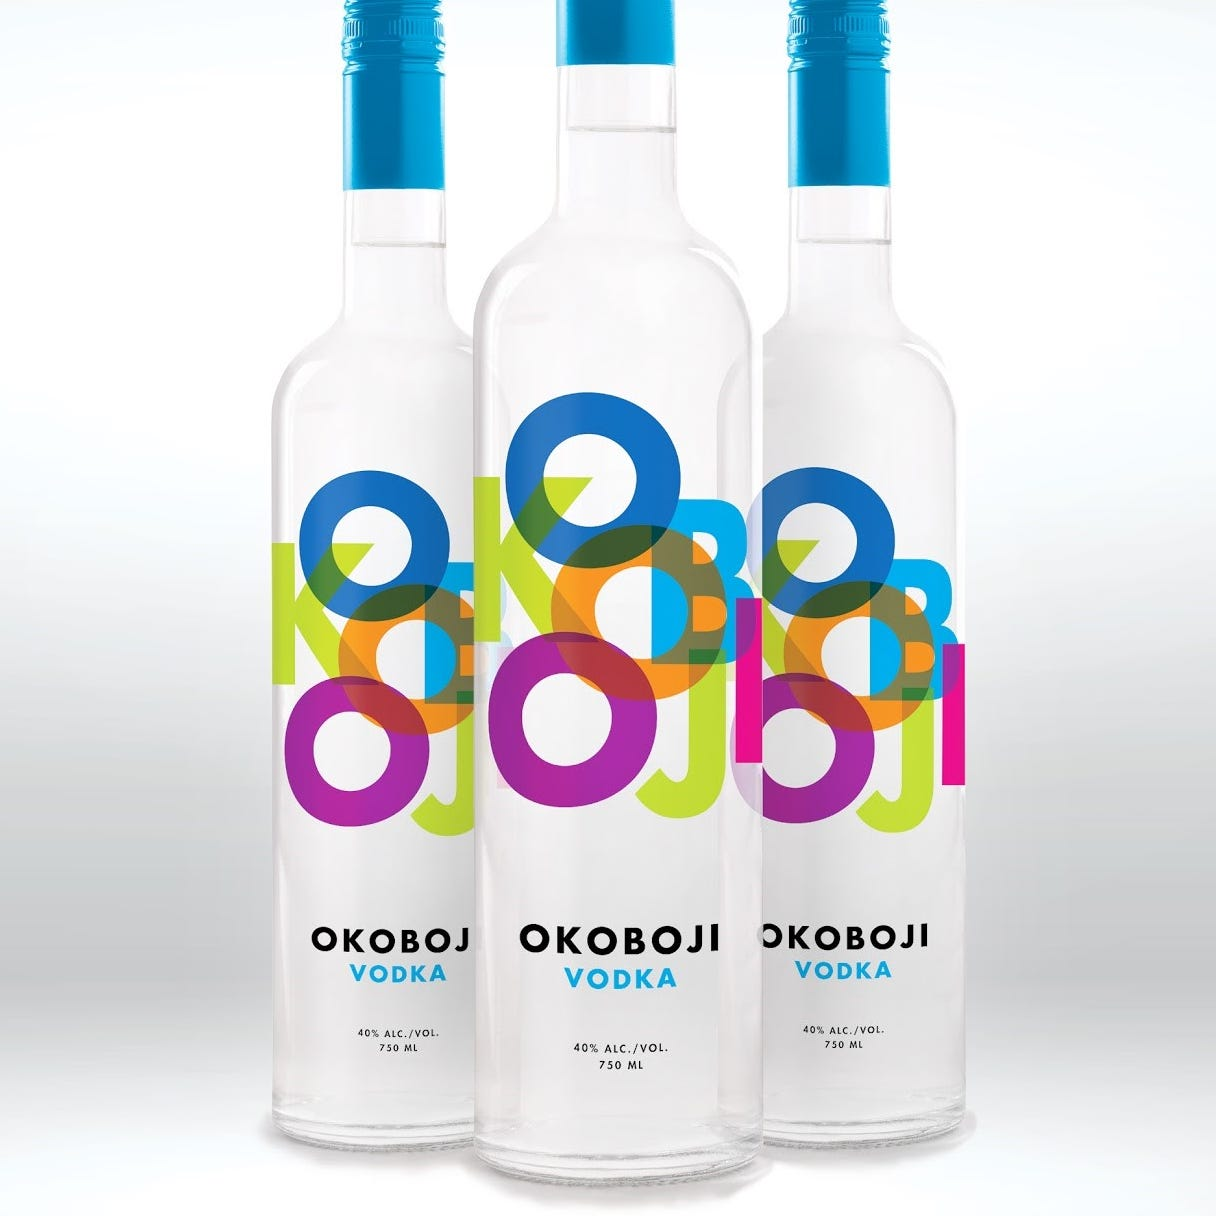 West Des Moines distillery launching new vodka named after Okoboji and made from Iowa corn